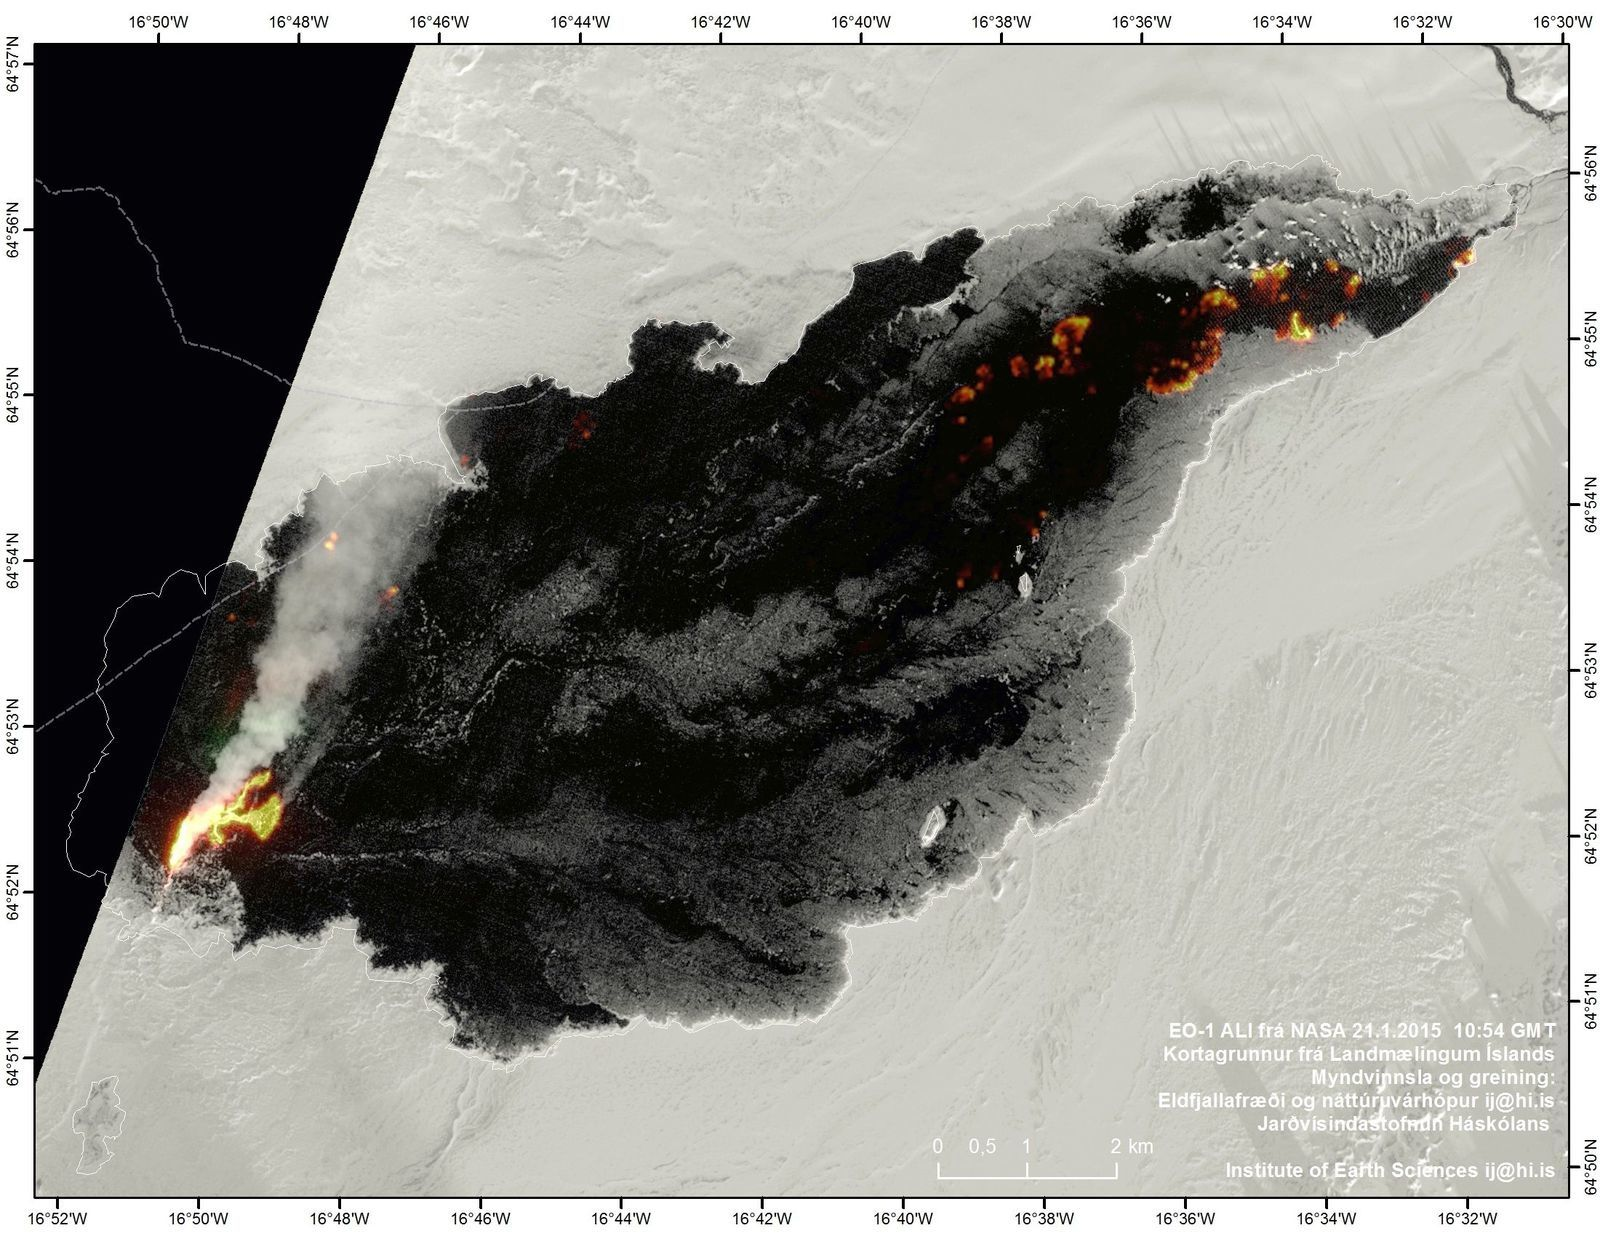 The Holuhraun lava field - 21/01/2015 - photo NASA EO-1